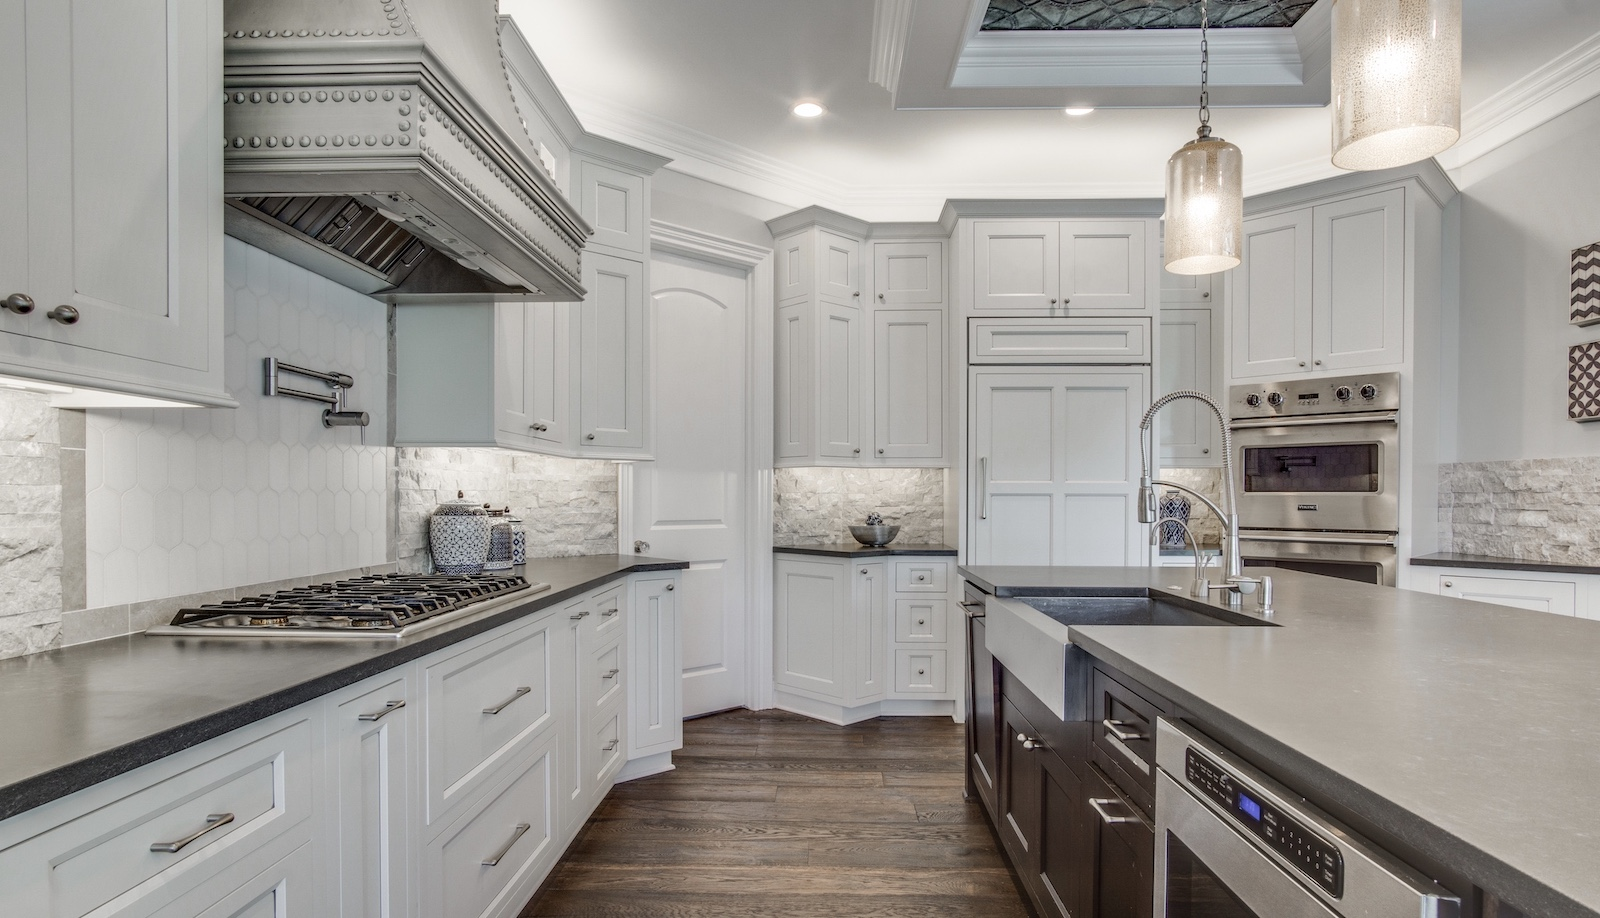 The kitchen island and range hood in Jaime, designed by TK Design & Associates